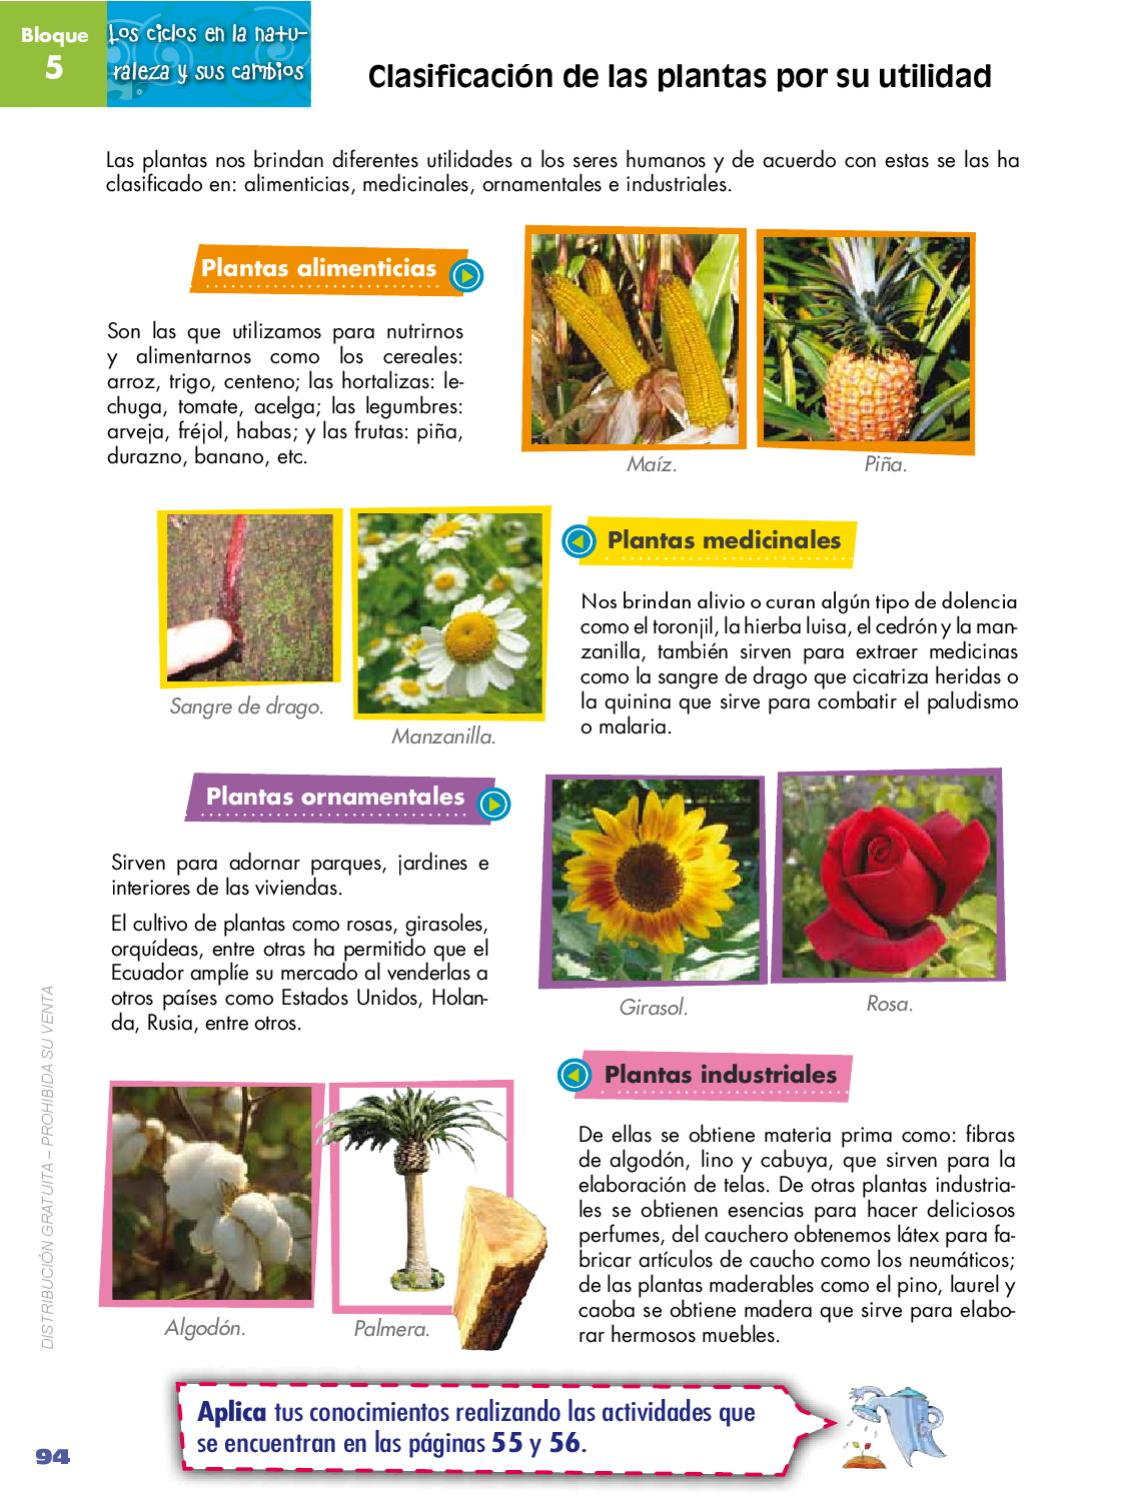 Naturales 4 by quito ecuador issuu for Tipos de plantas ornamentales de venezuela